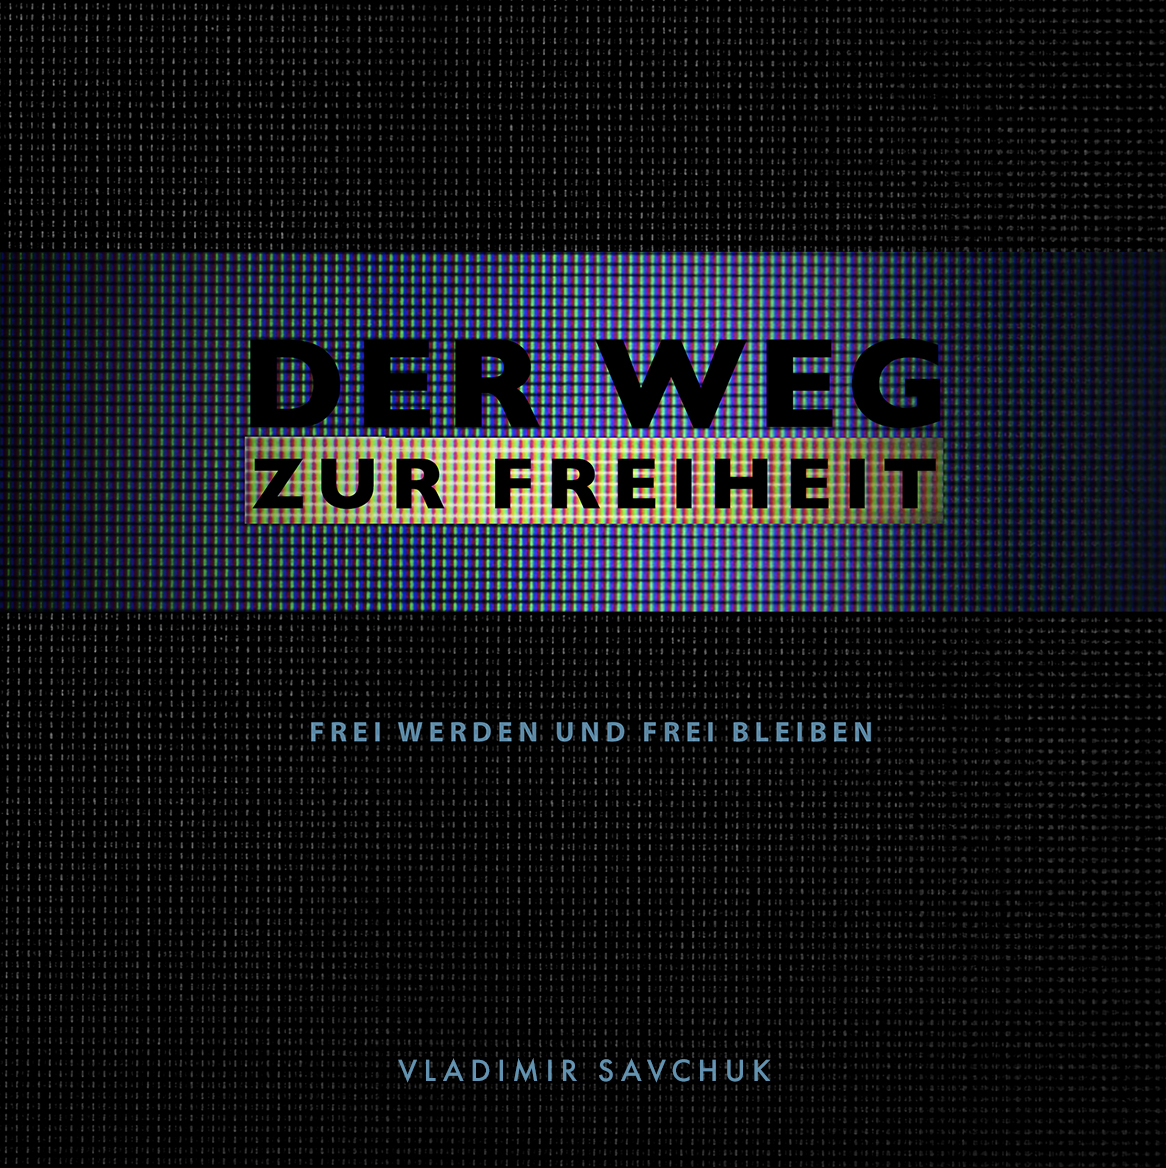 https://vladimirsavchuk.com/resources/break-free-german/